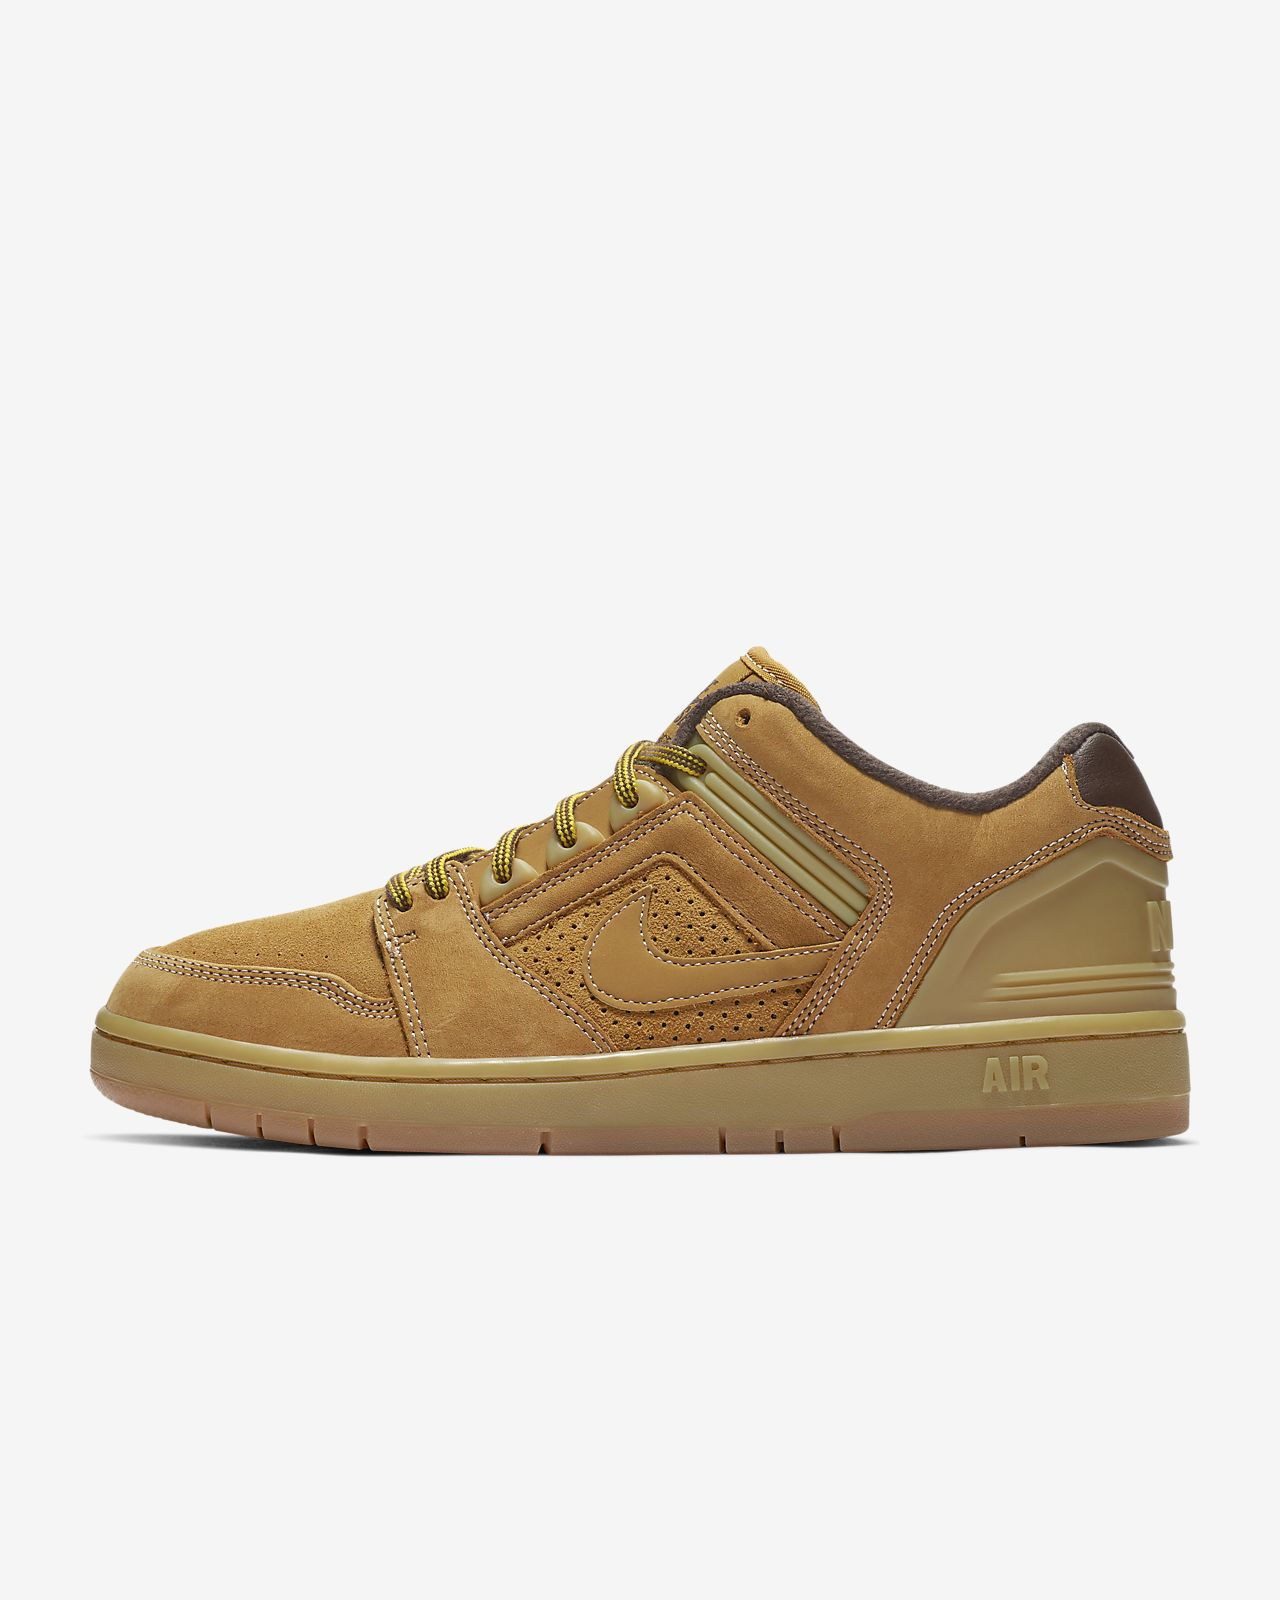 32c2f0cbedee Nike SB Air Force II Low Premium Skateboarding Shoe. Nike.com SK